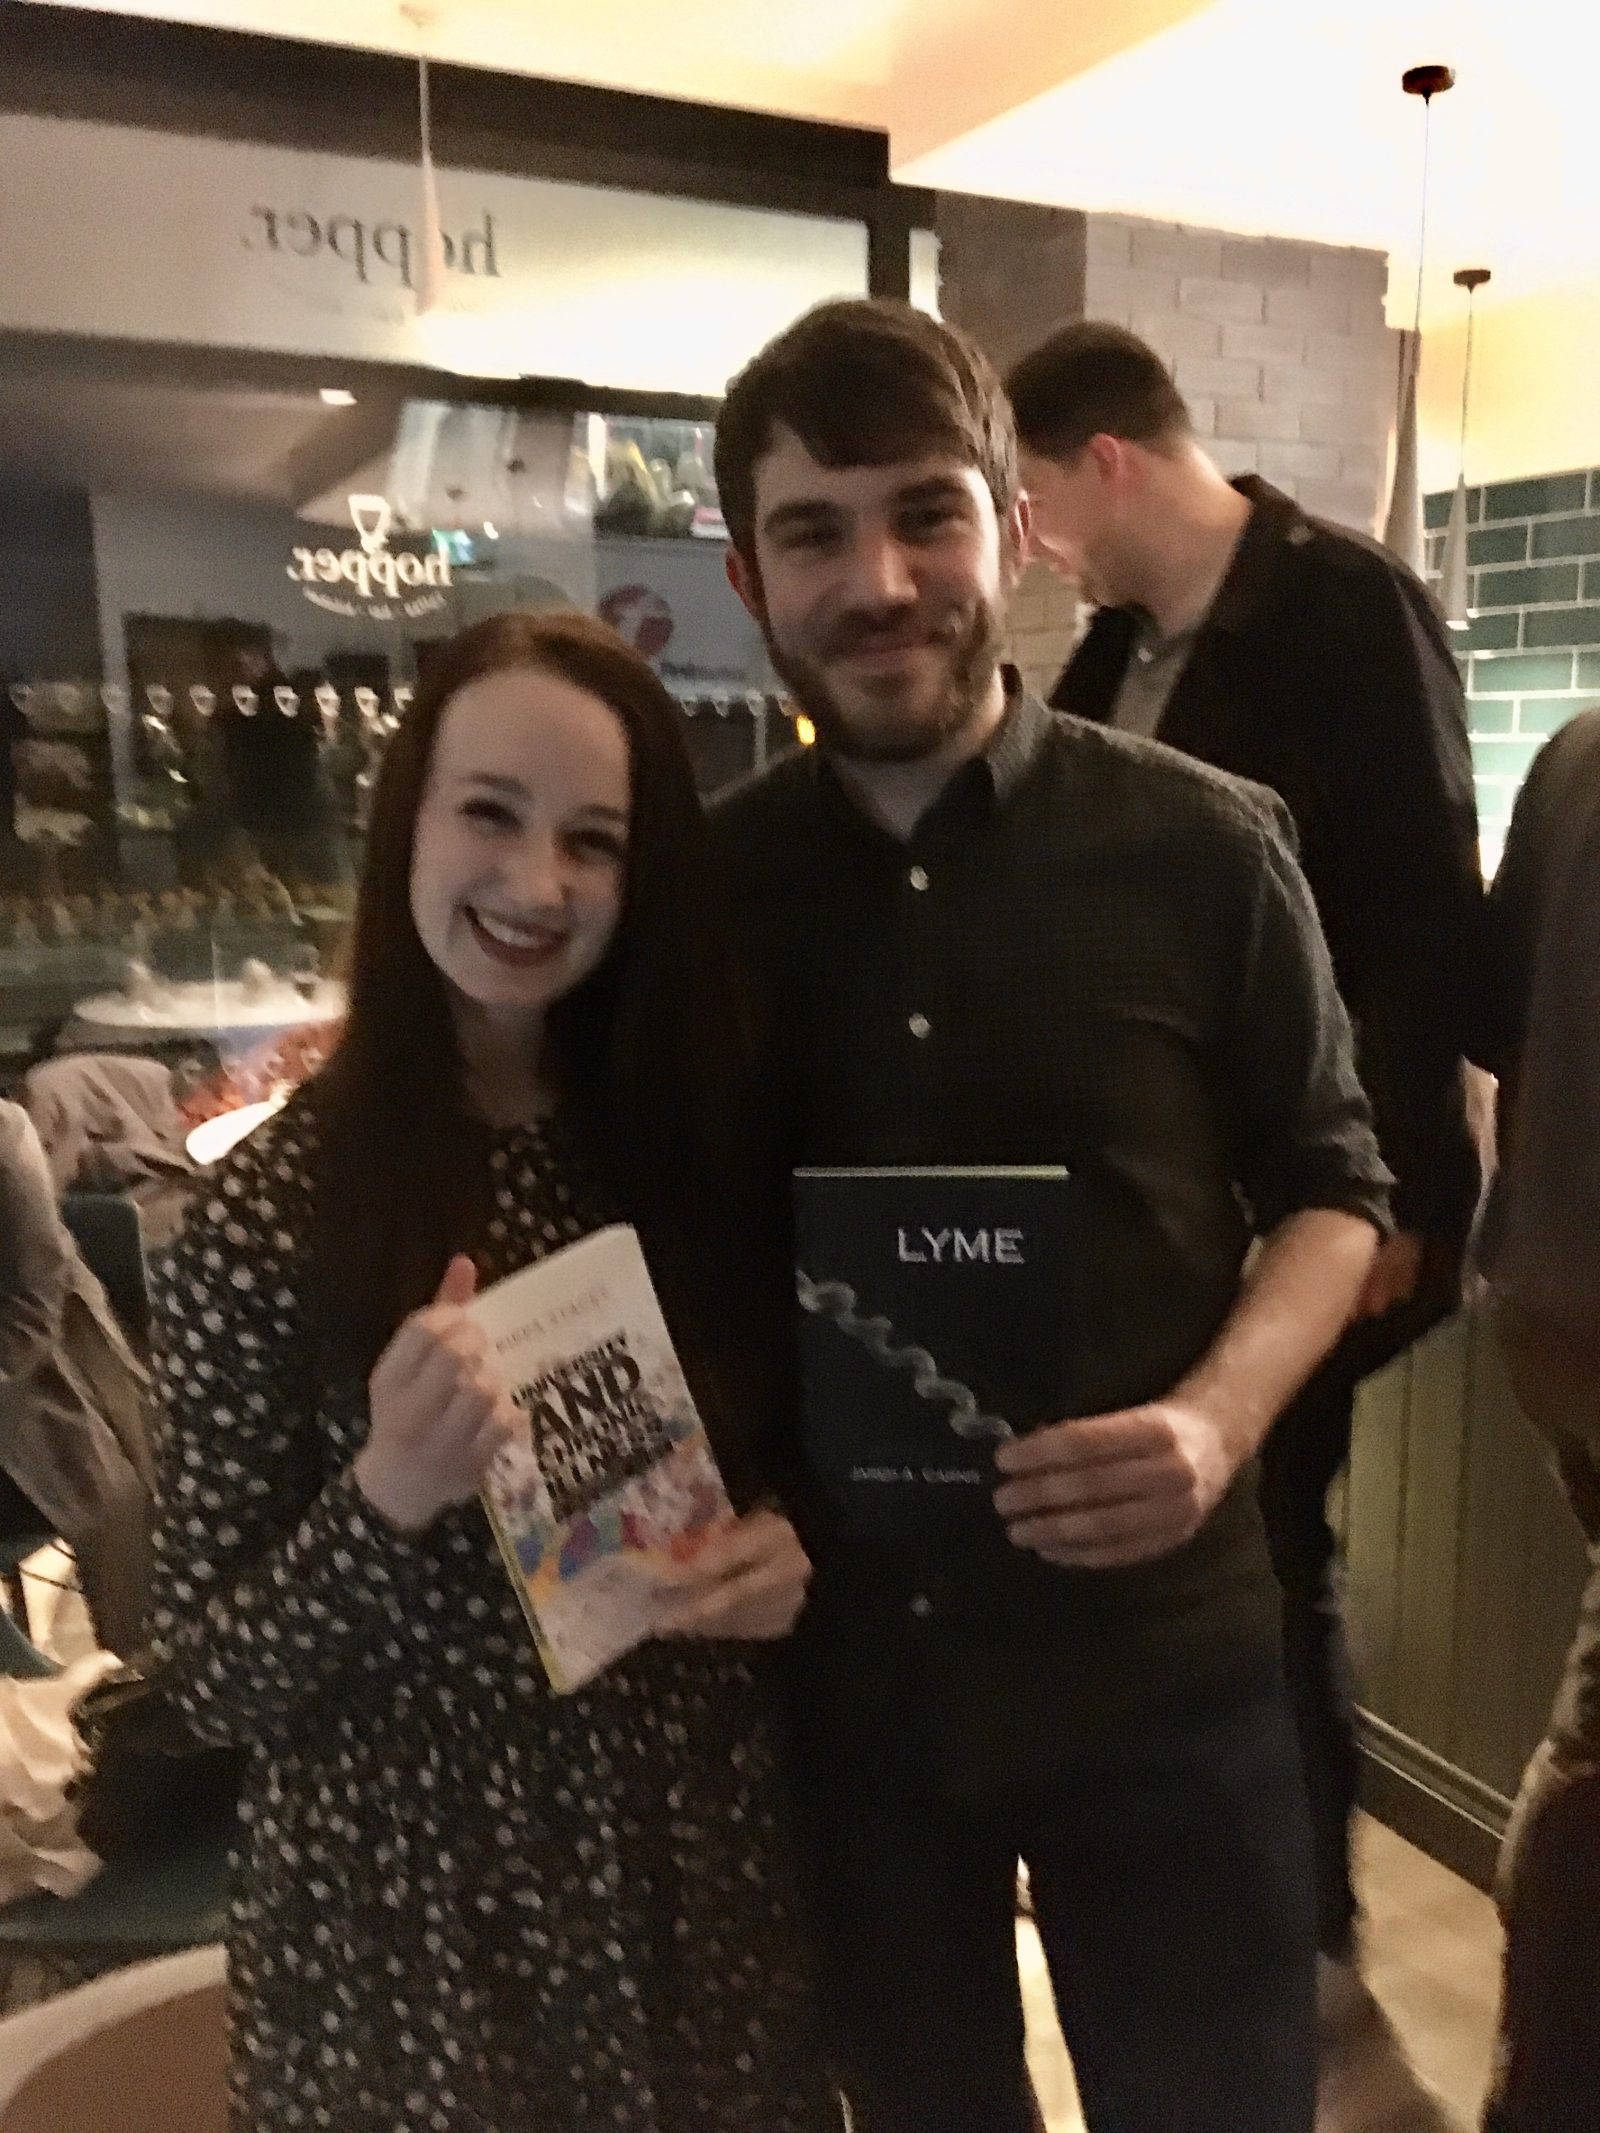 pippa and jared stood up next to each other at book launch event, each holding copies of their own book and smiling